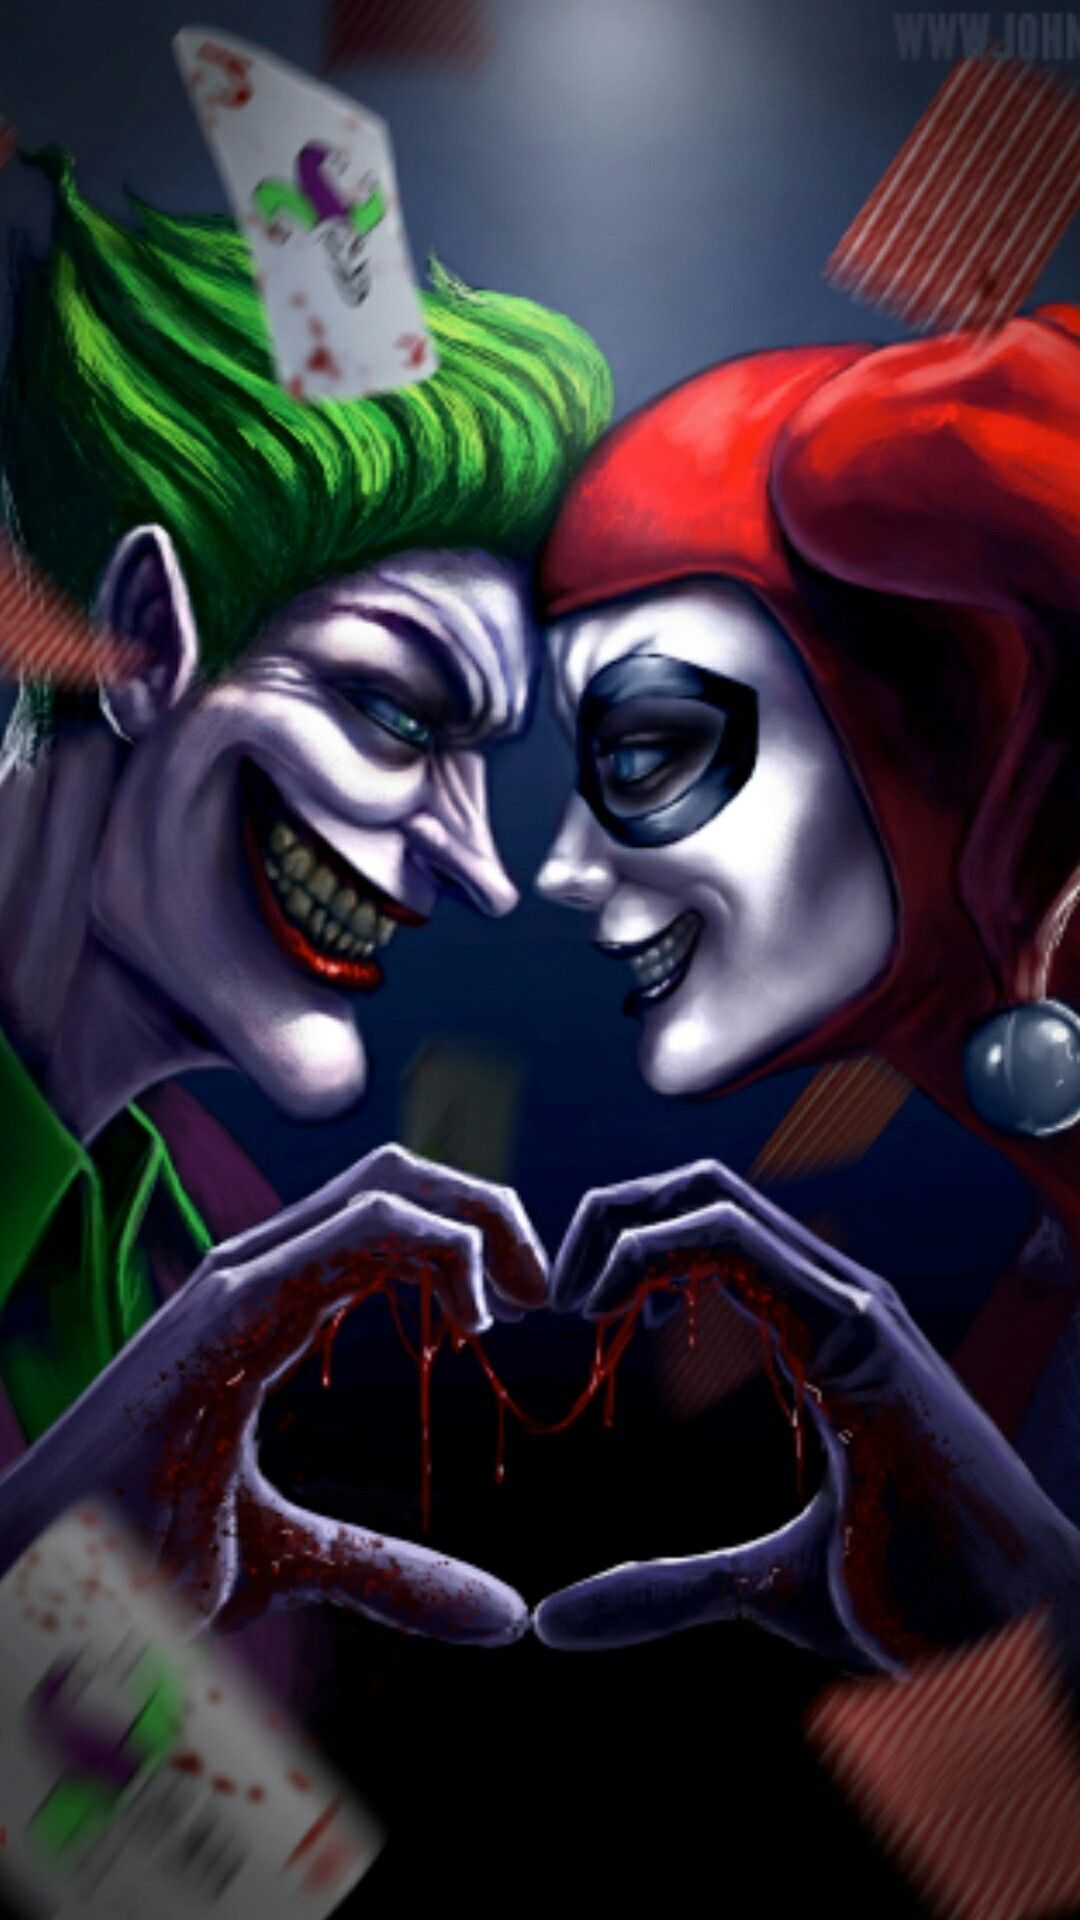 Joker And Harley Quinn Wallpapers Top Free Joker And Harley